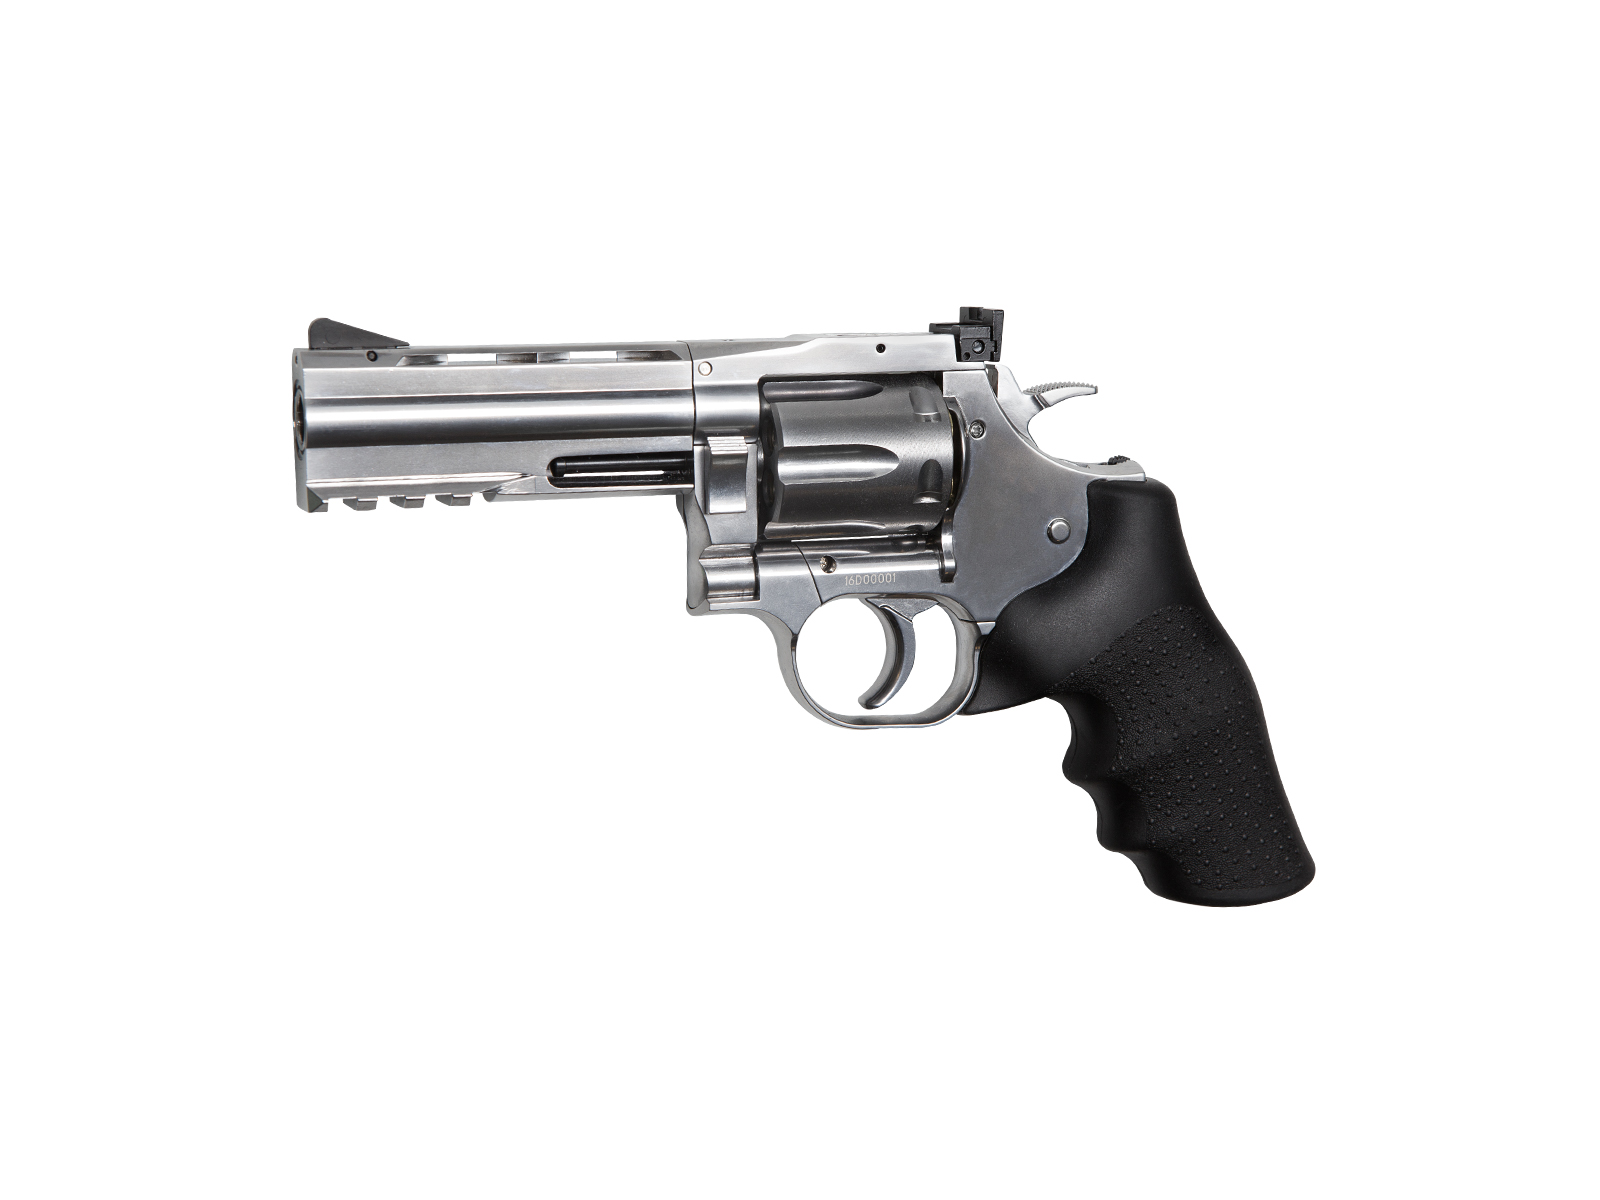 Revolver Model Dan Wesson 715 - 4 Inch - Cal. 4.5 imagine